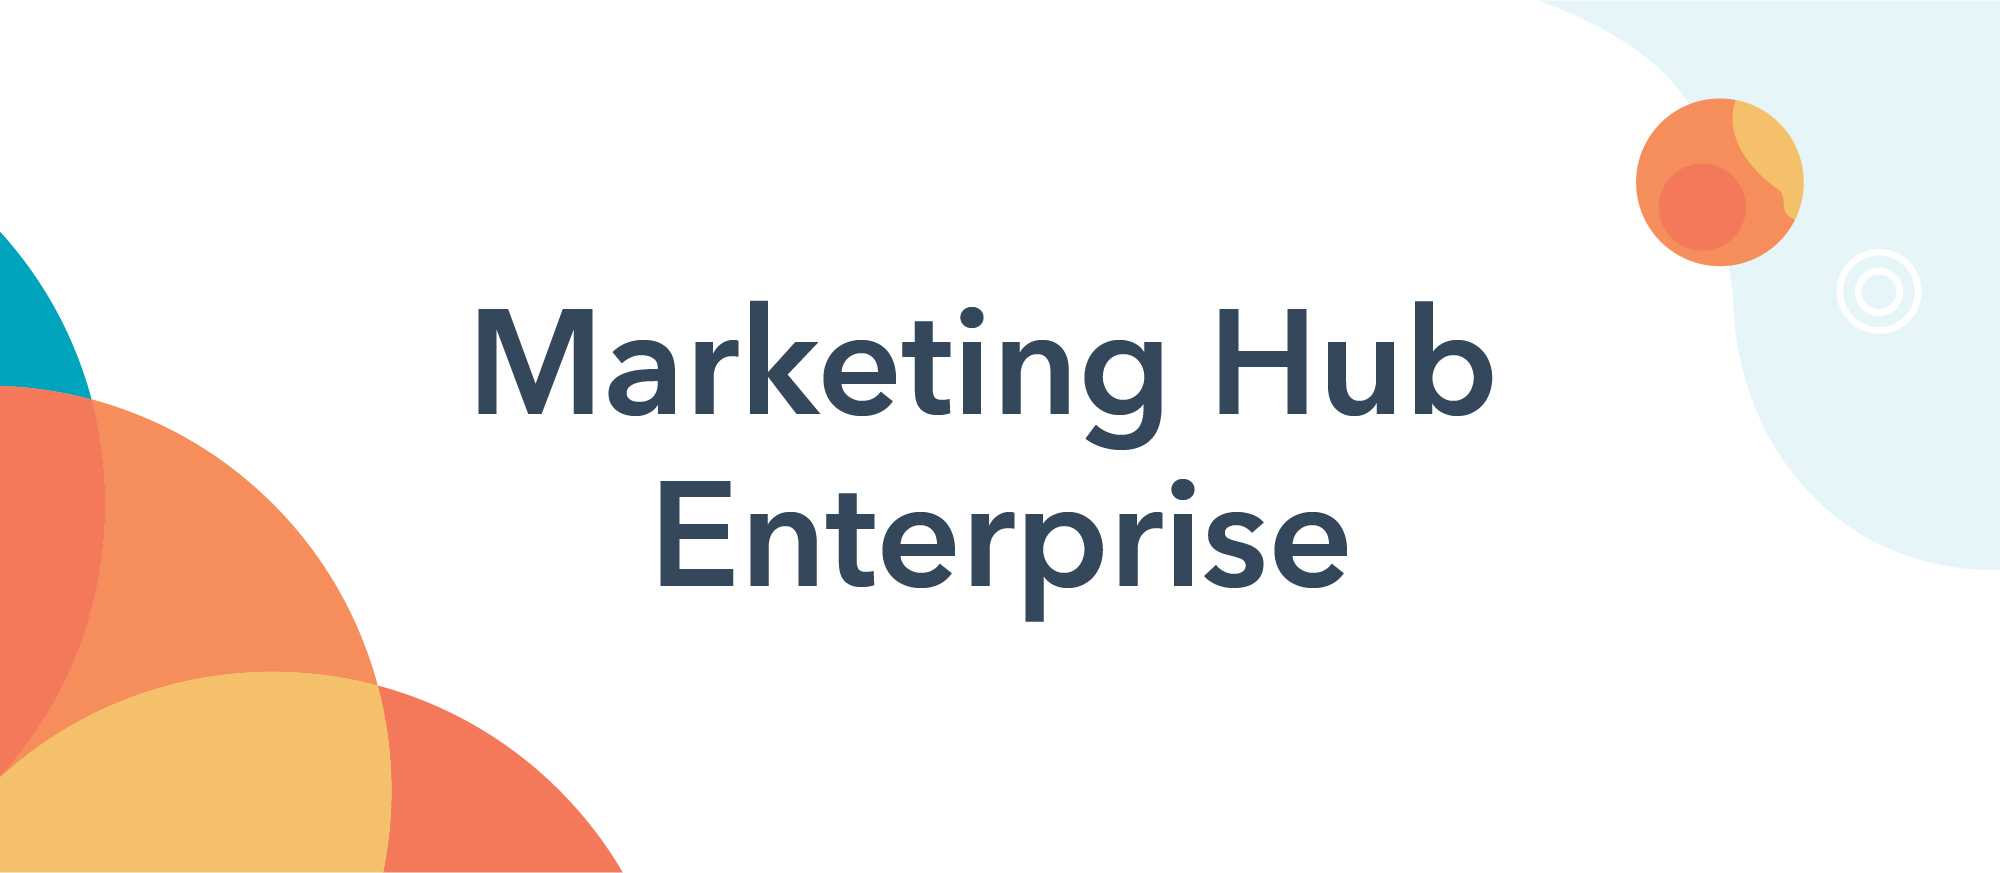 When Does it Make Sense to Upgrade from HubSpot Marketing Pro to Marketing Enterprise?